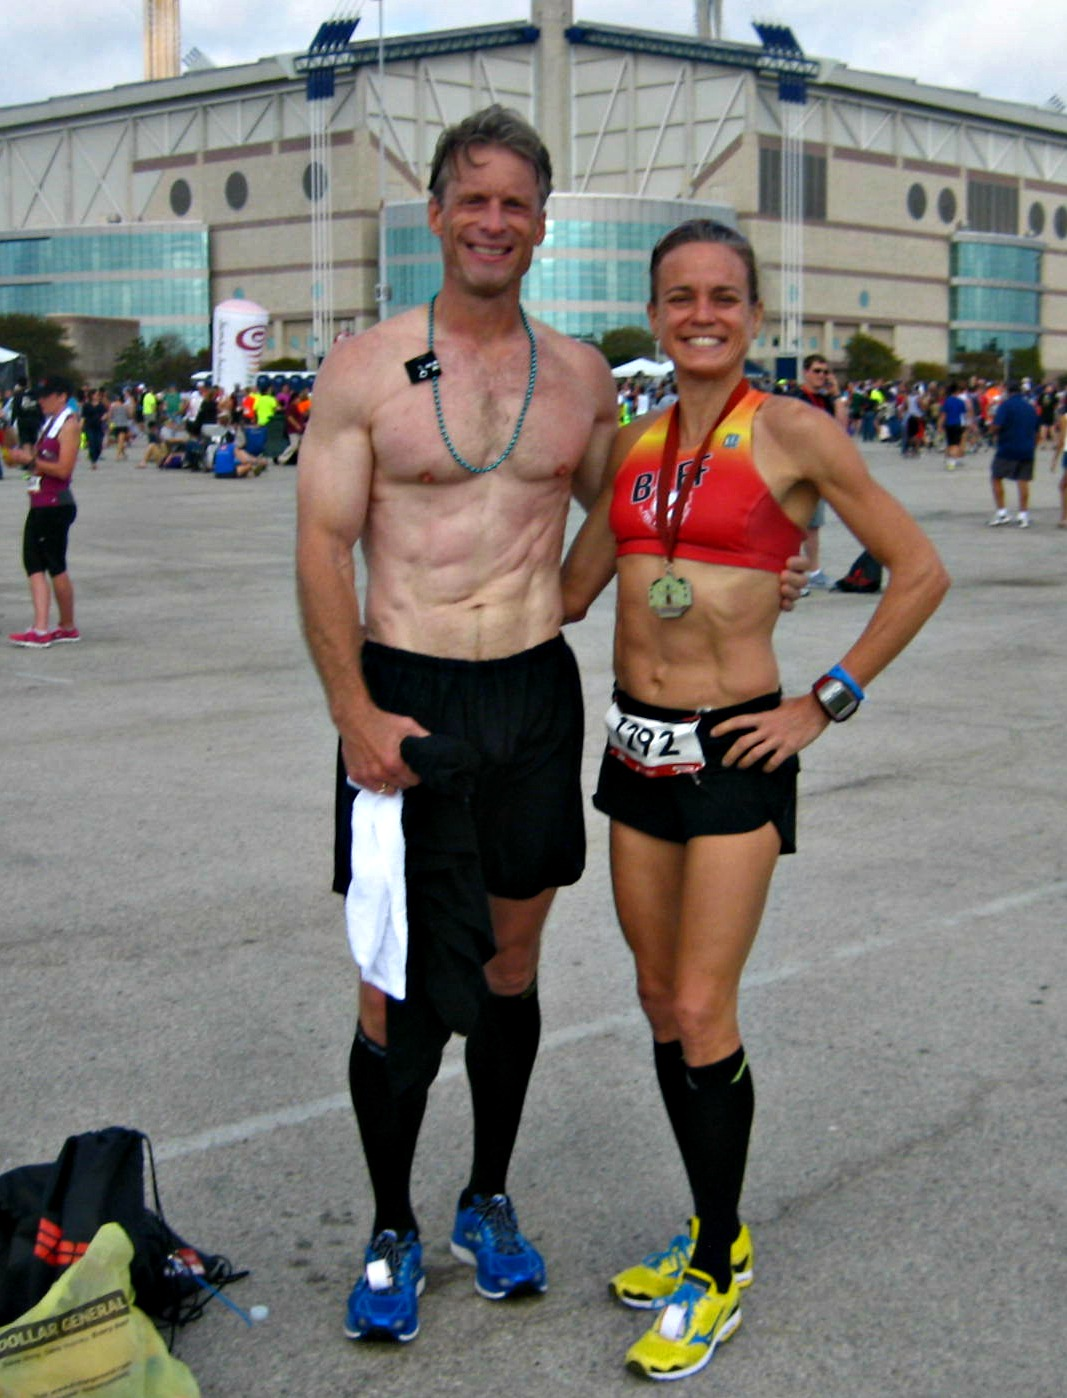 Airline Milf san antonio r&r half marathon recap and fitmark bag review